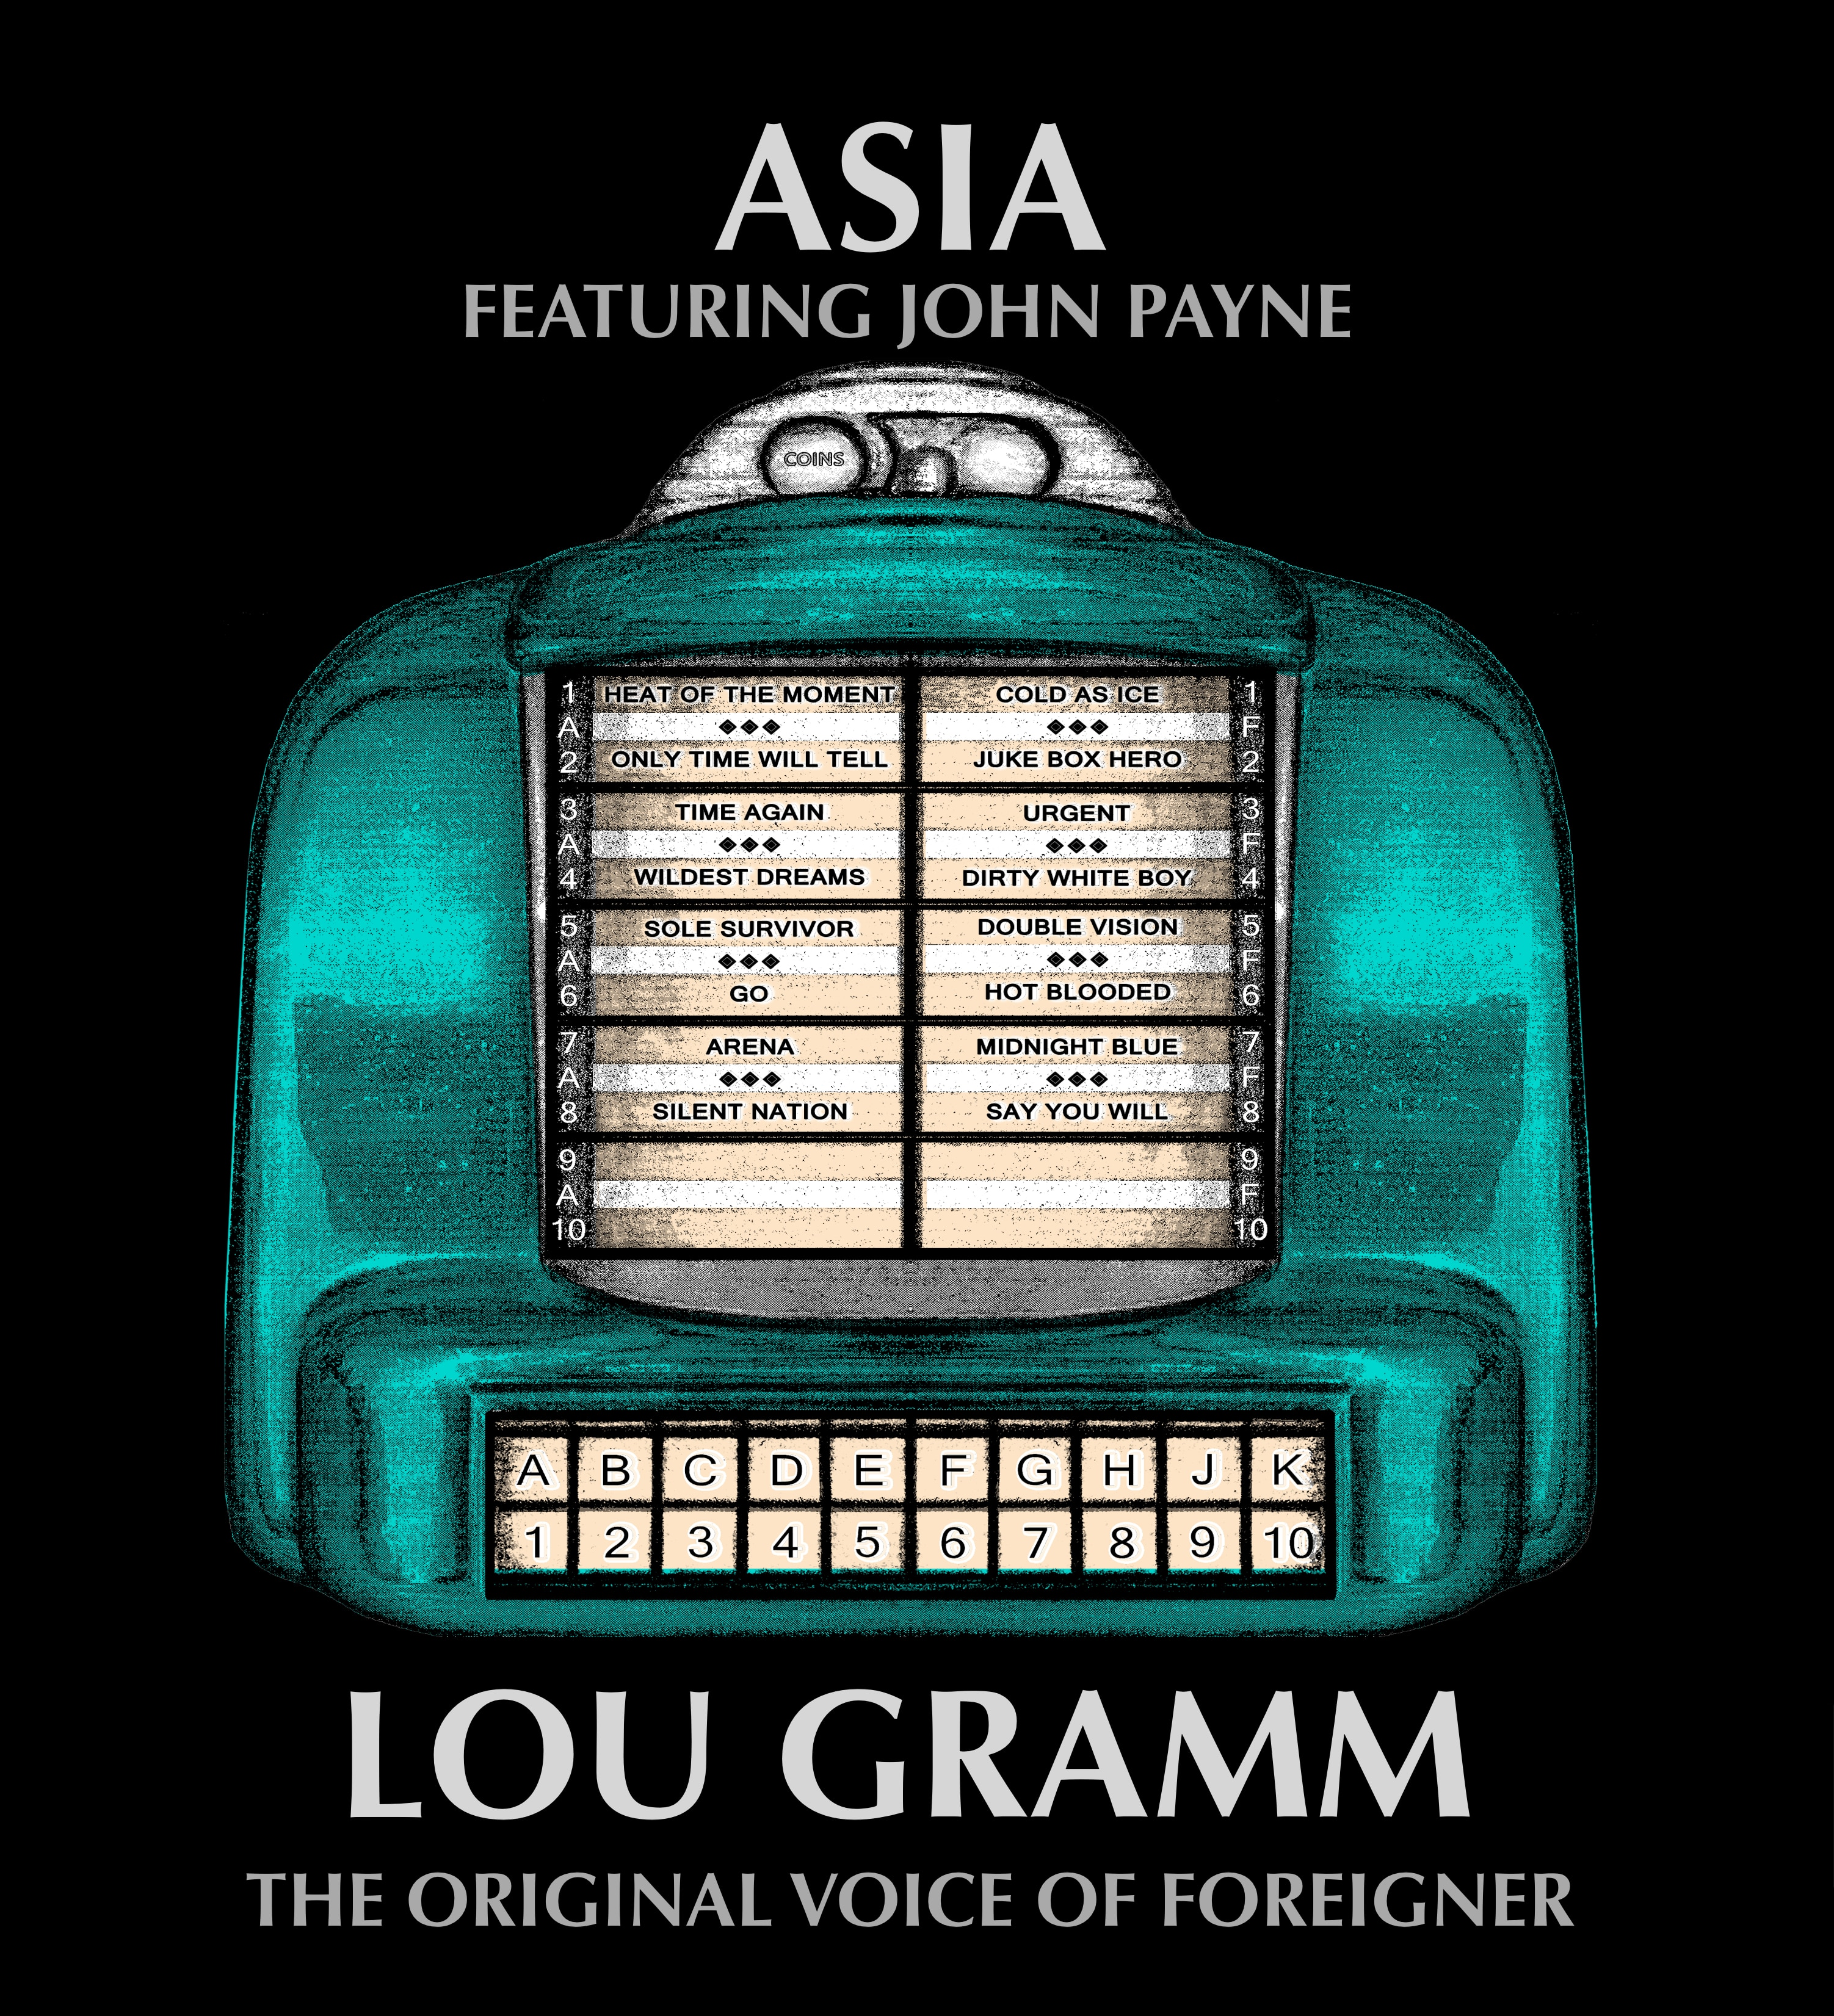 ASIA featuring John Payne/Lou Gramm – The Original Voice Of Foreigner